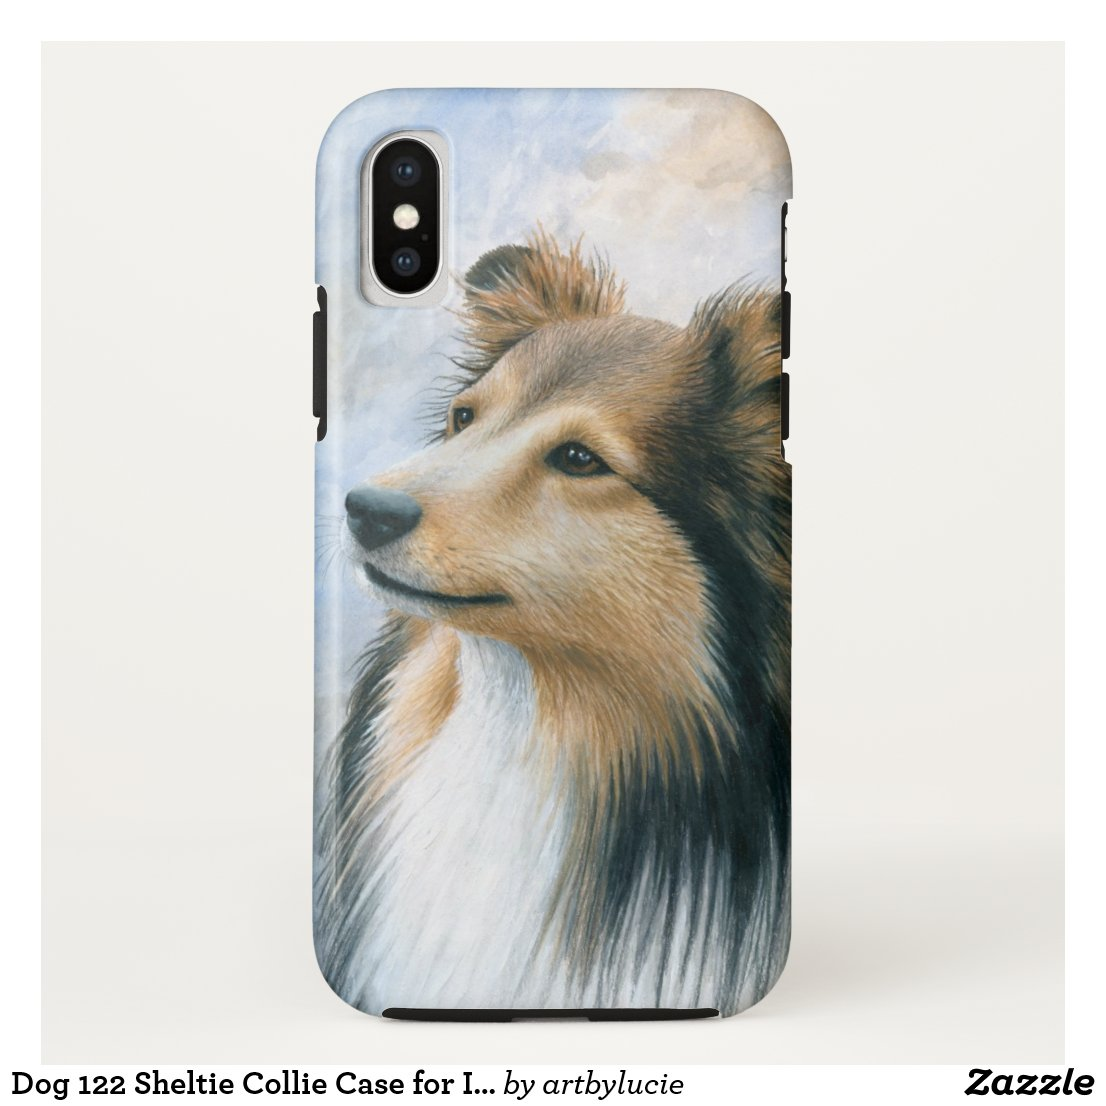 Dog 122 Sheltie Collie Case for Iphone 6